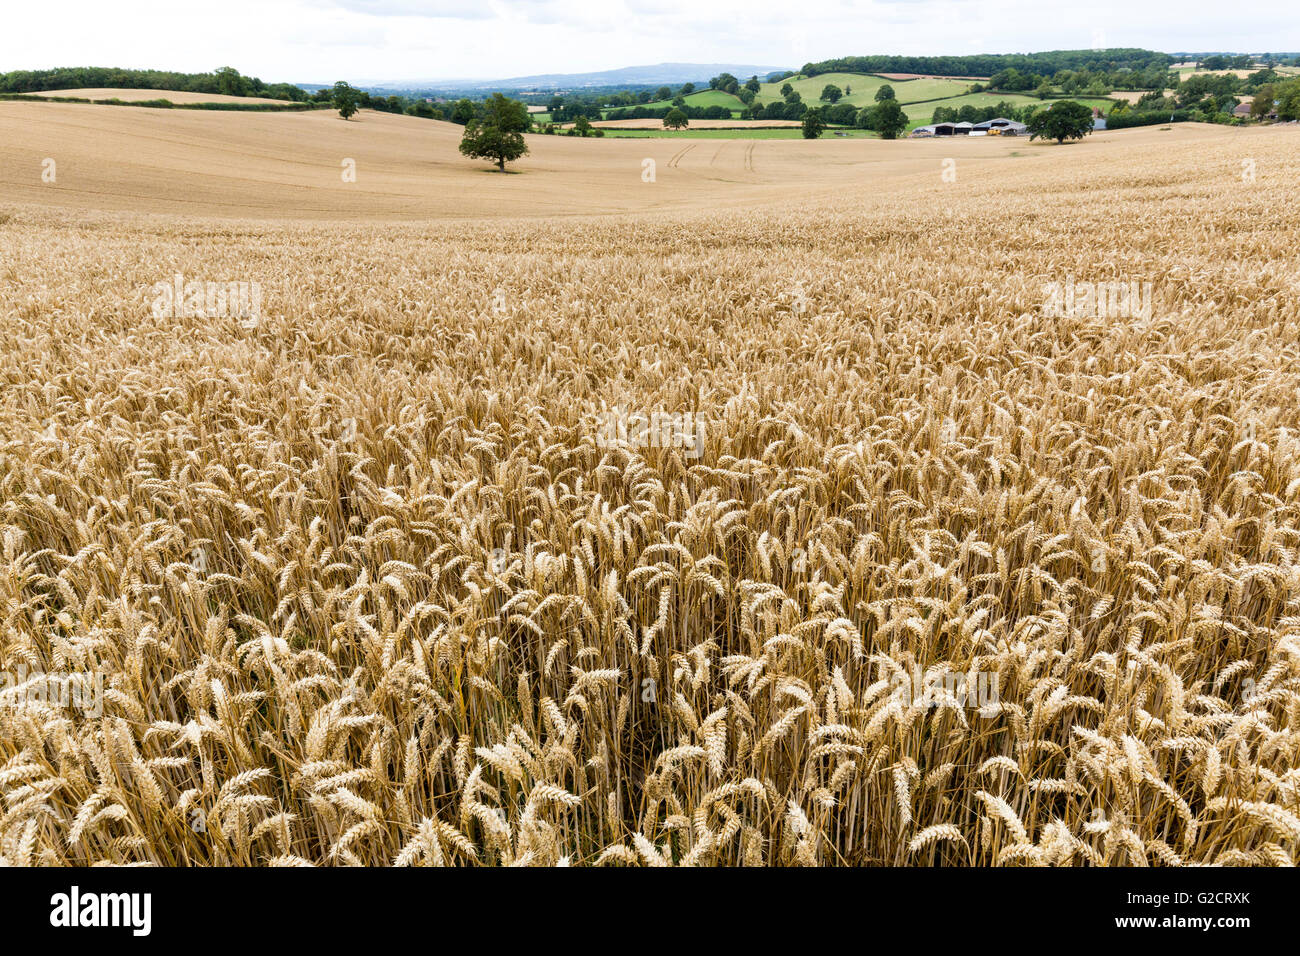 Wheat field crop near Edvin Loach, Herefordshire, England, UK - Stock Image